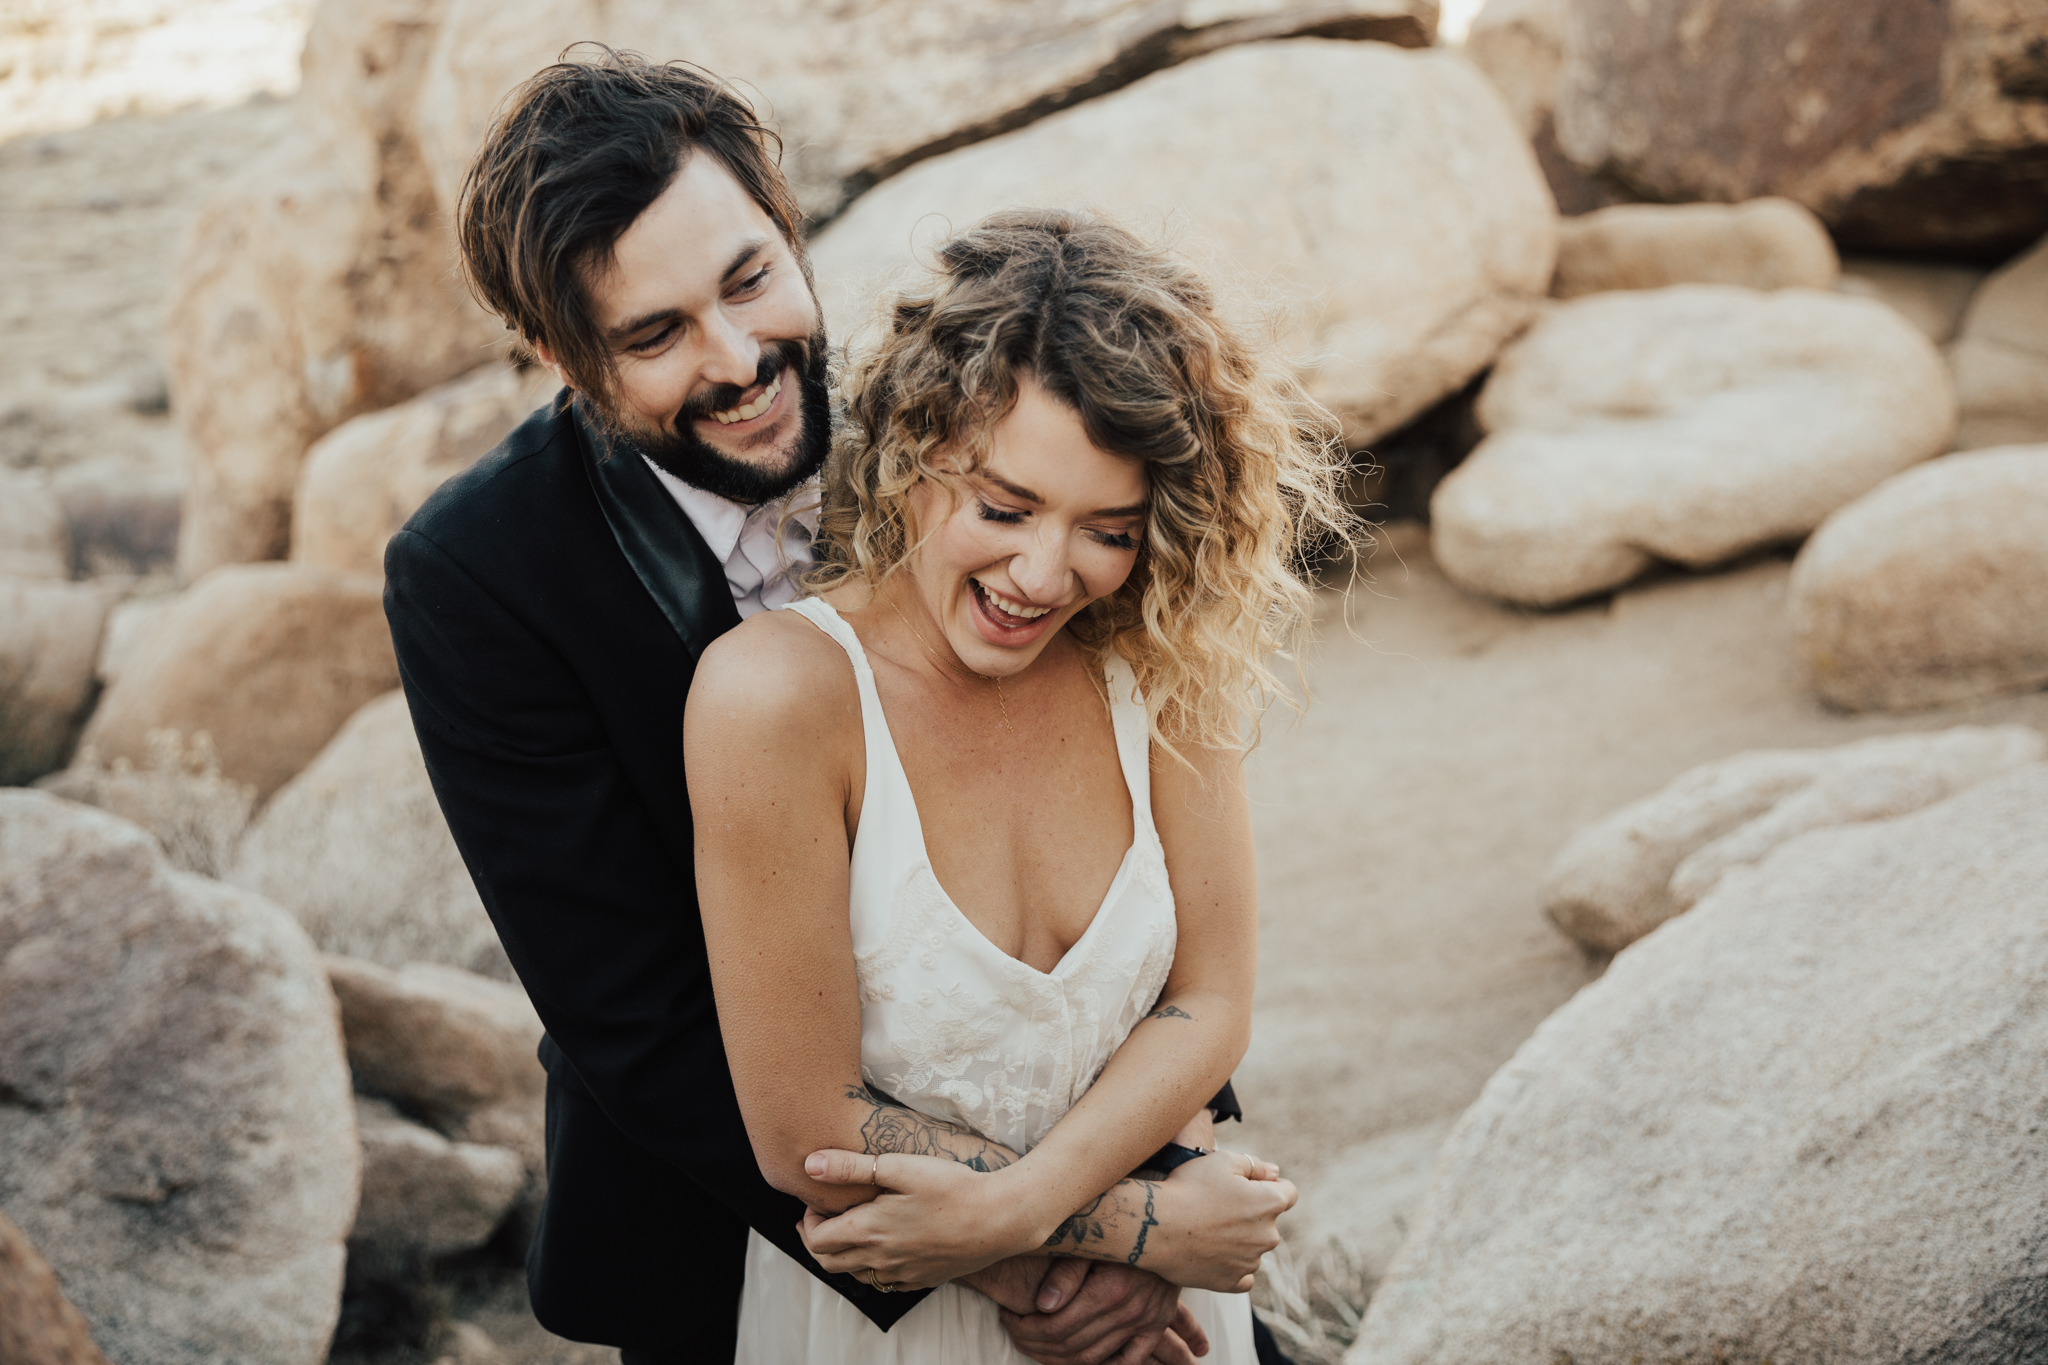 Destination elopement photographer